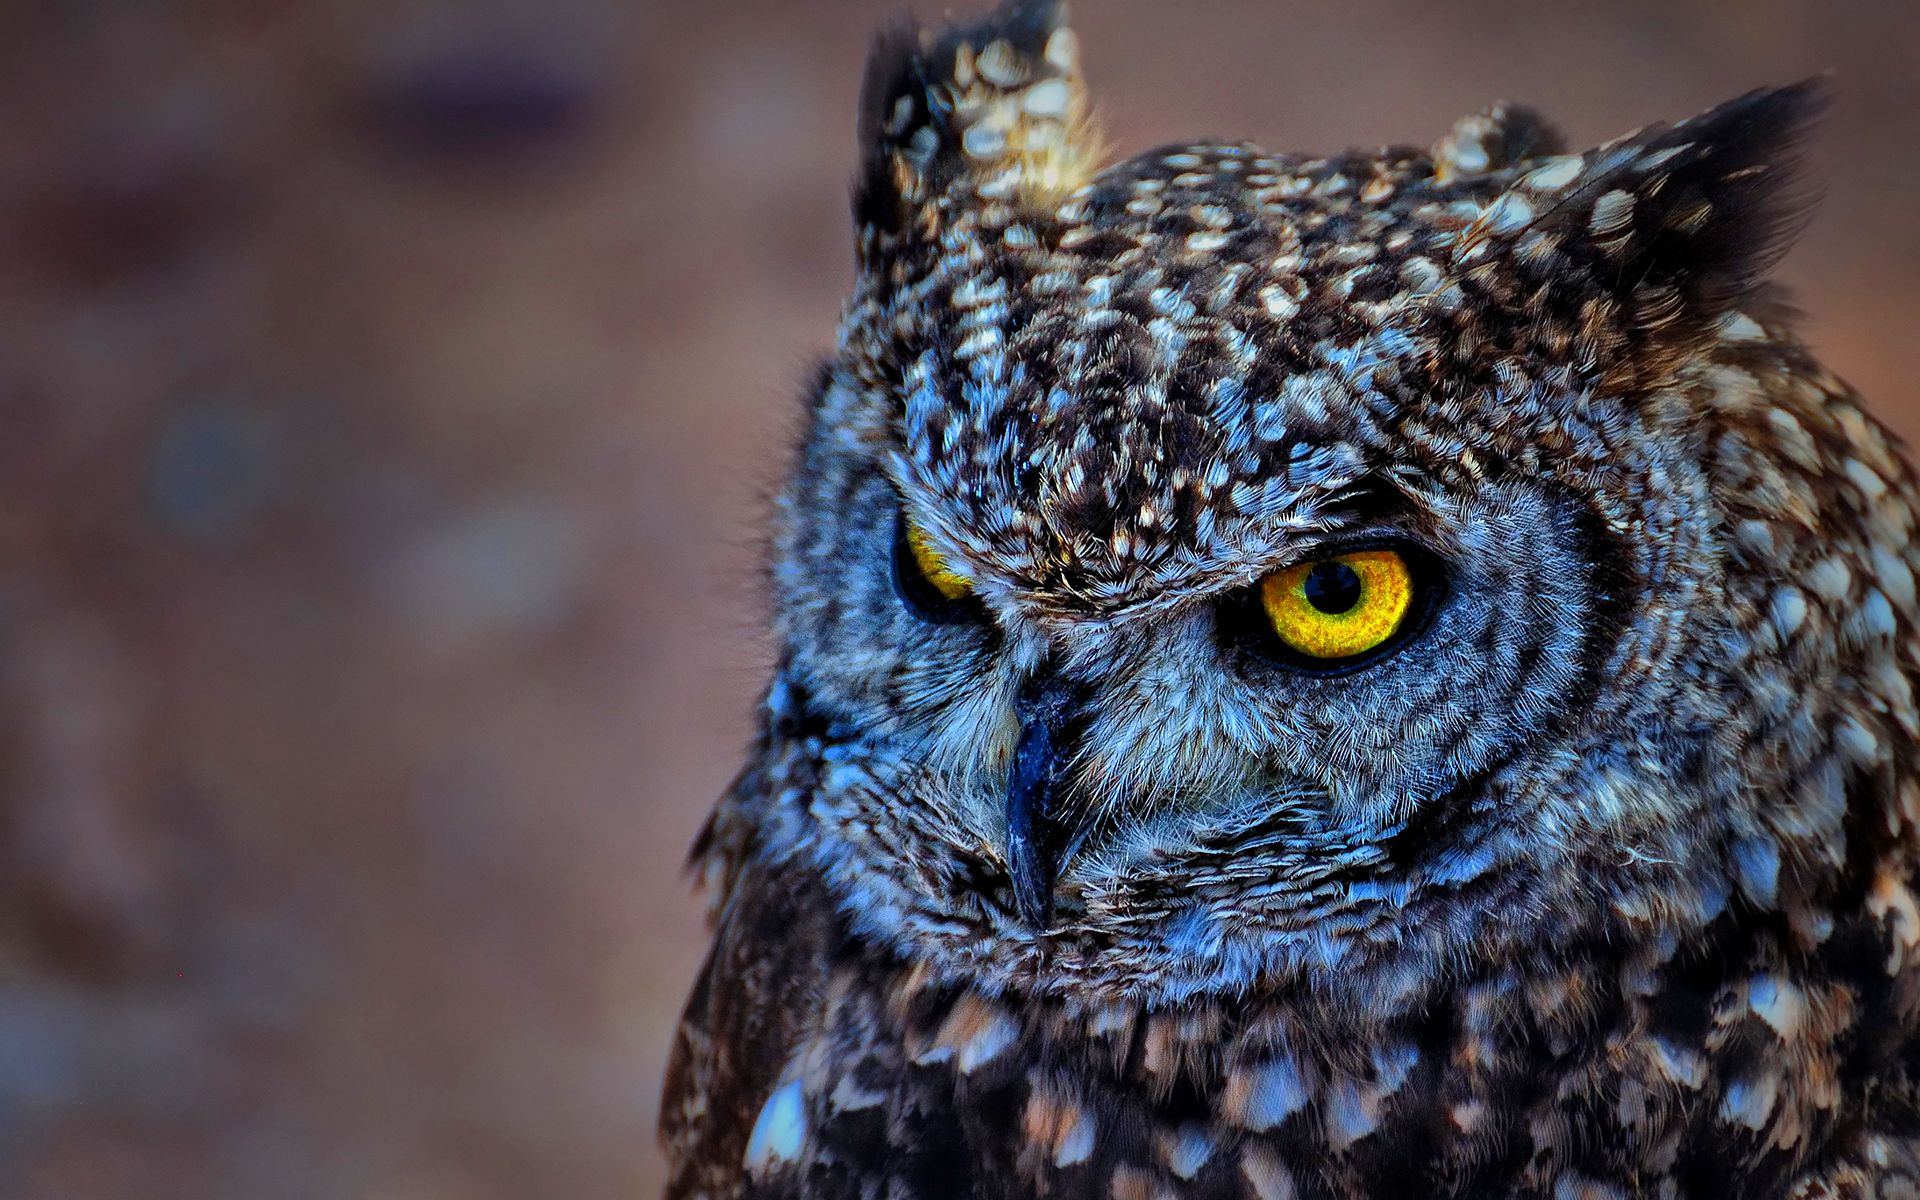 EAGLE OWL WALLPAPERS FREE Wallpapers & Background images